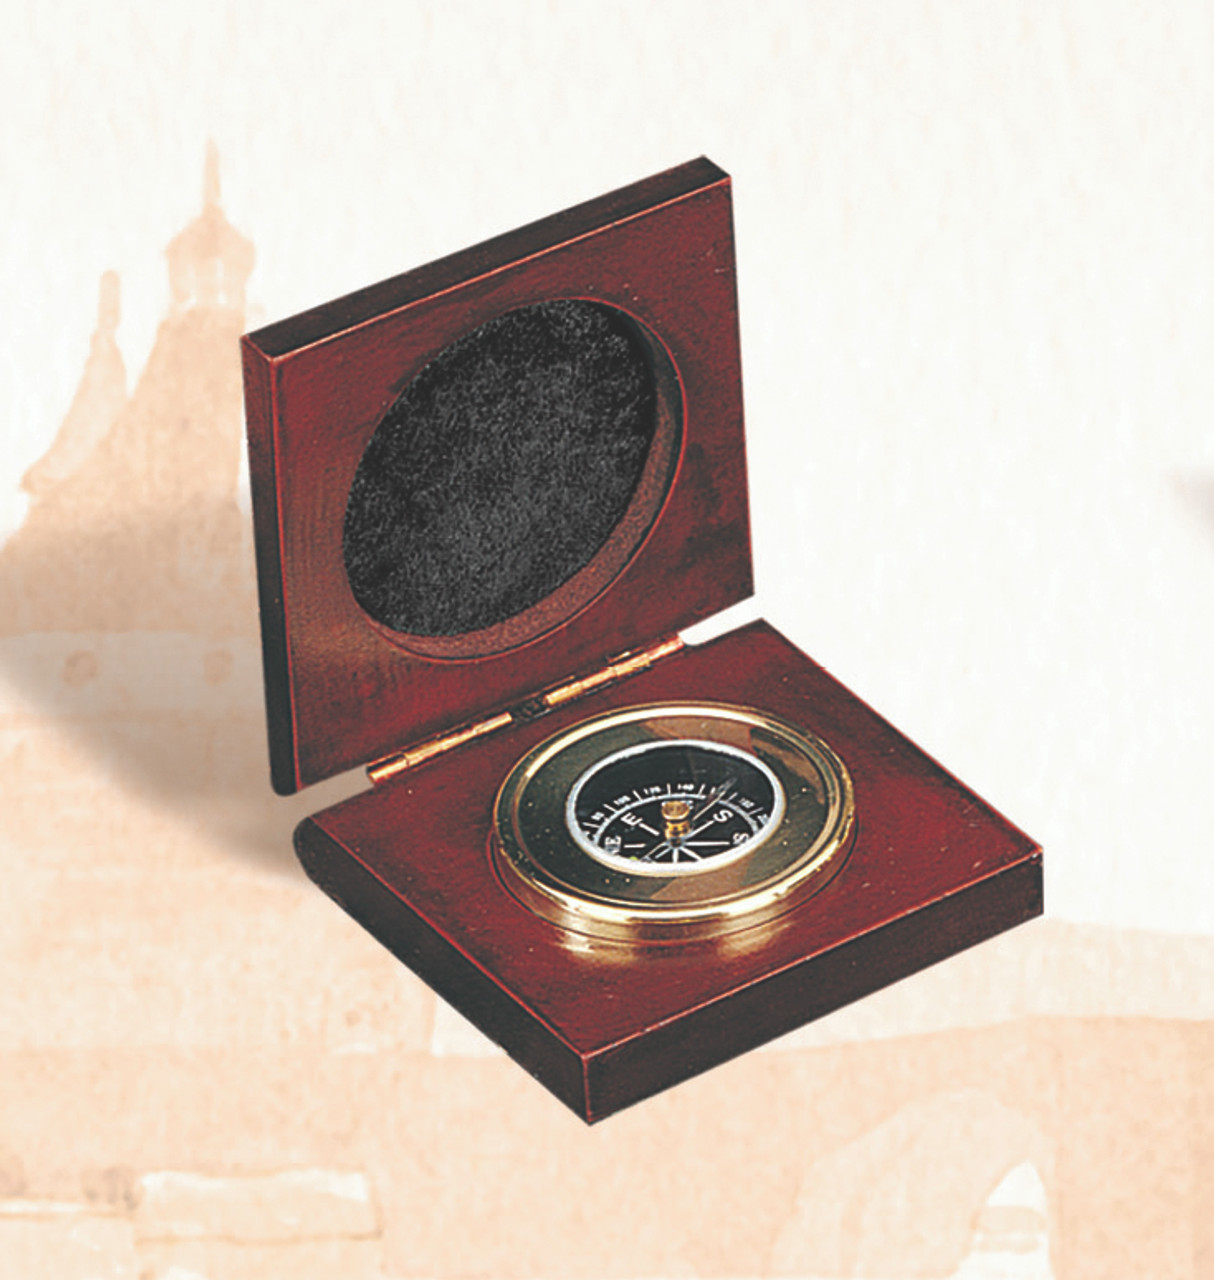 "(BW-665) 2.5"" Executive Desk Compass with Mahogany Case"